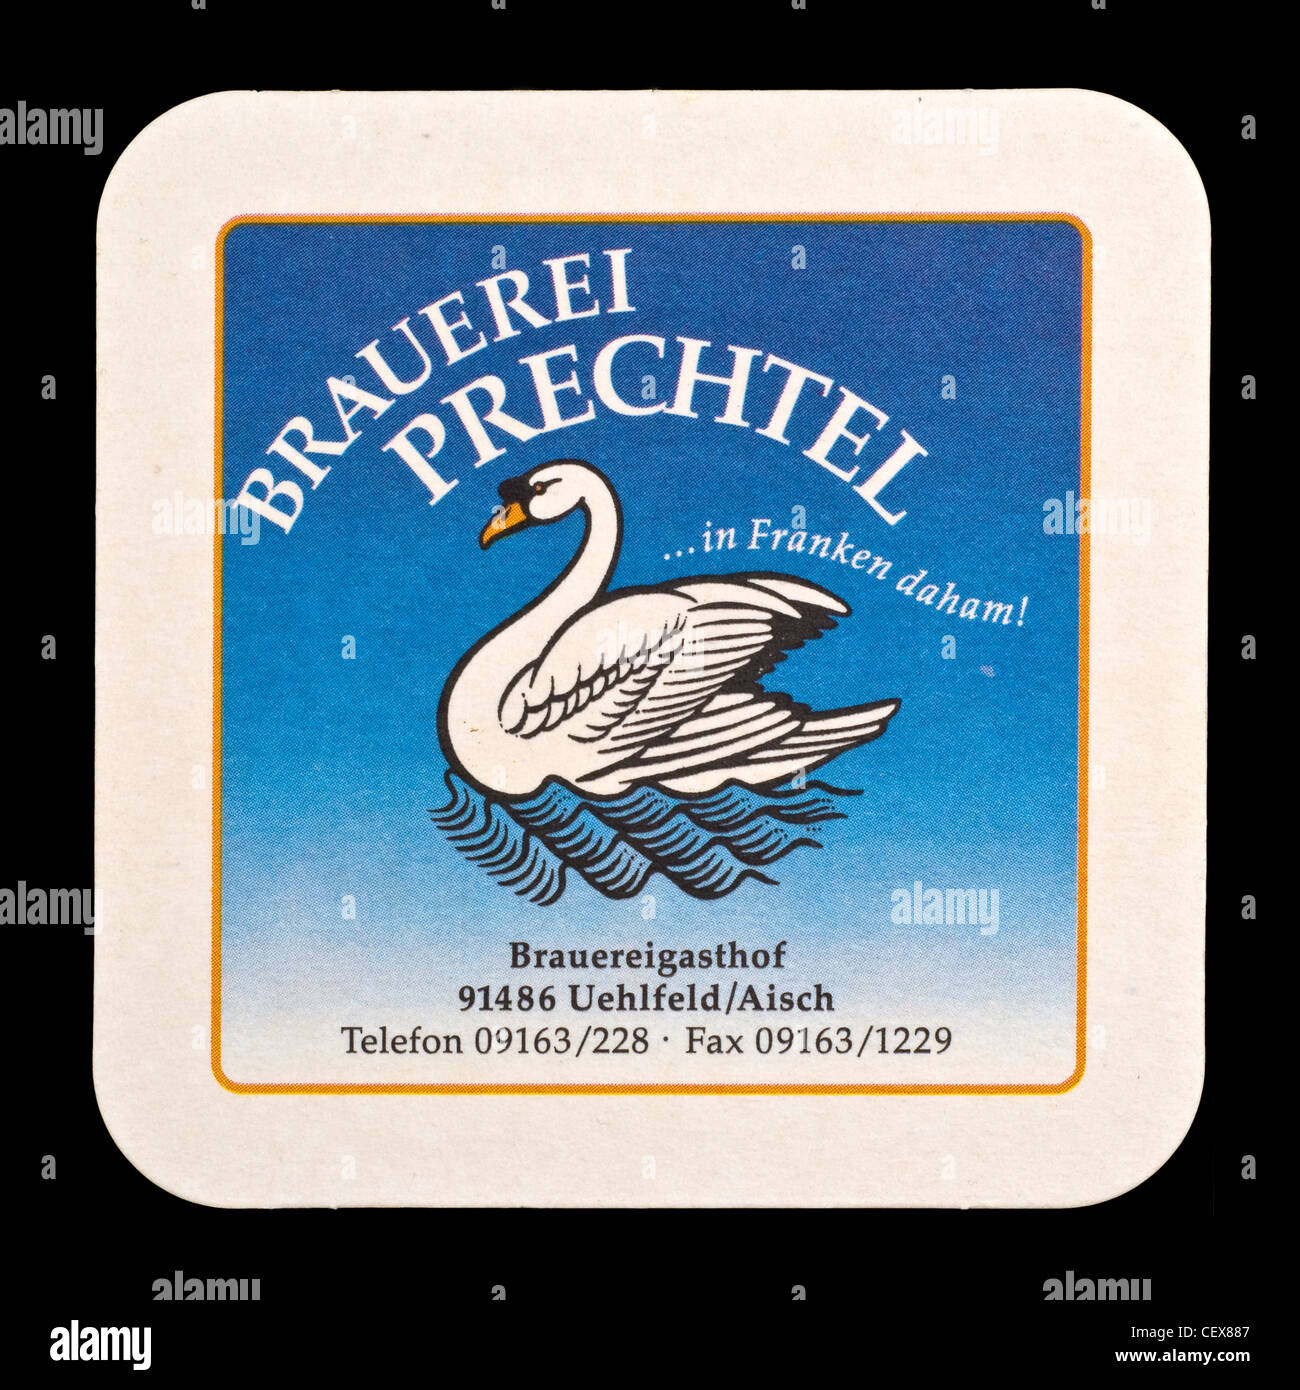 Beer mat from Prechtel Brewery, Franconia, Bavaria, Germany. Stock Photo